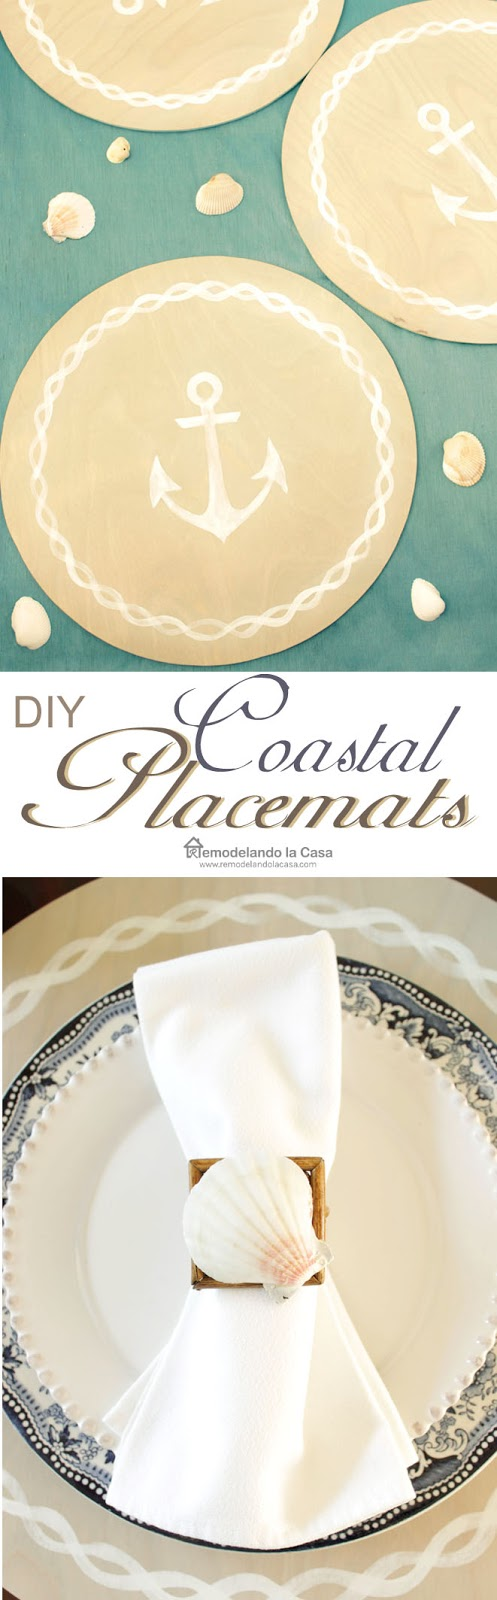 how to make placemats out of wood